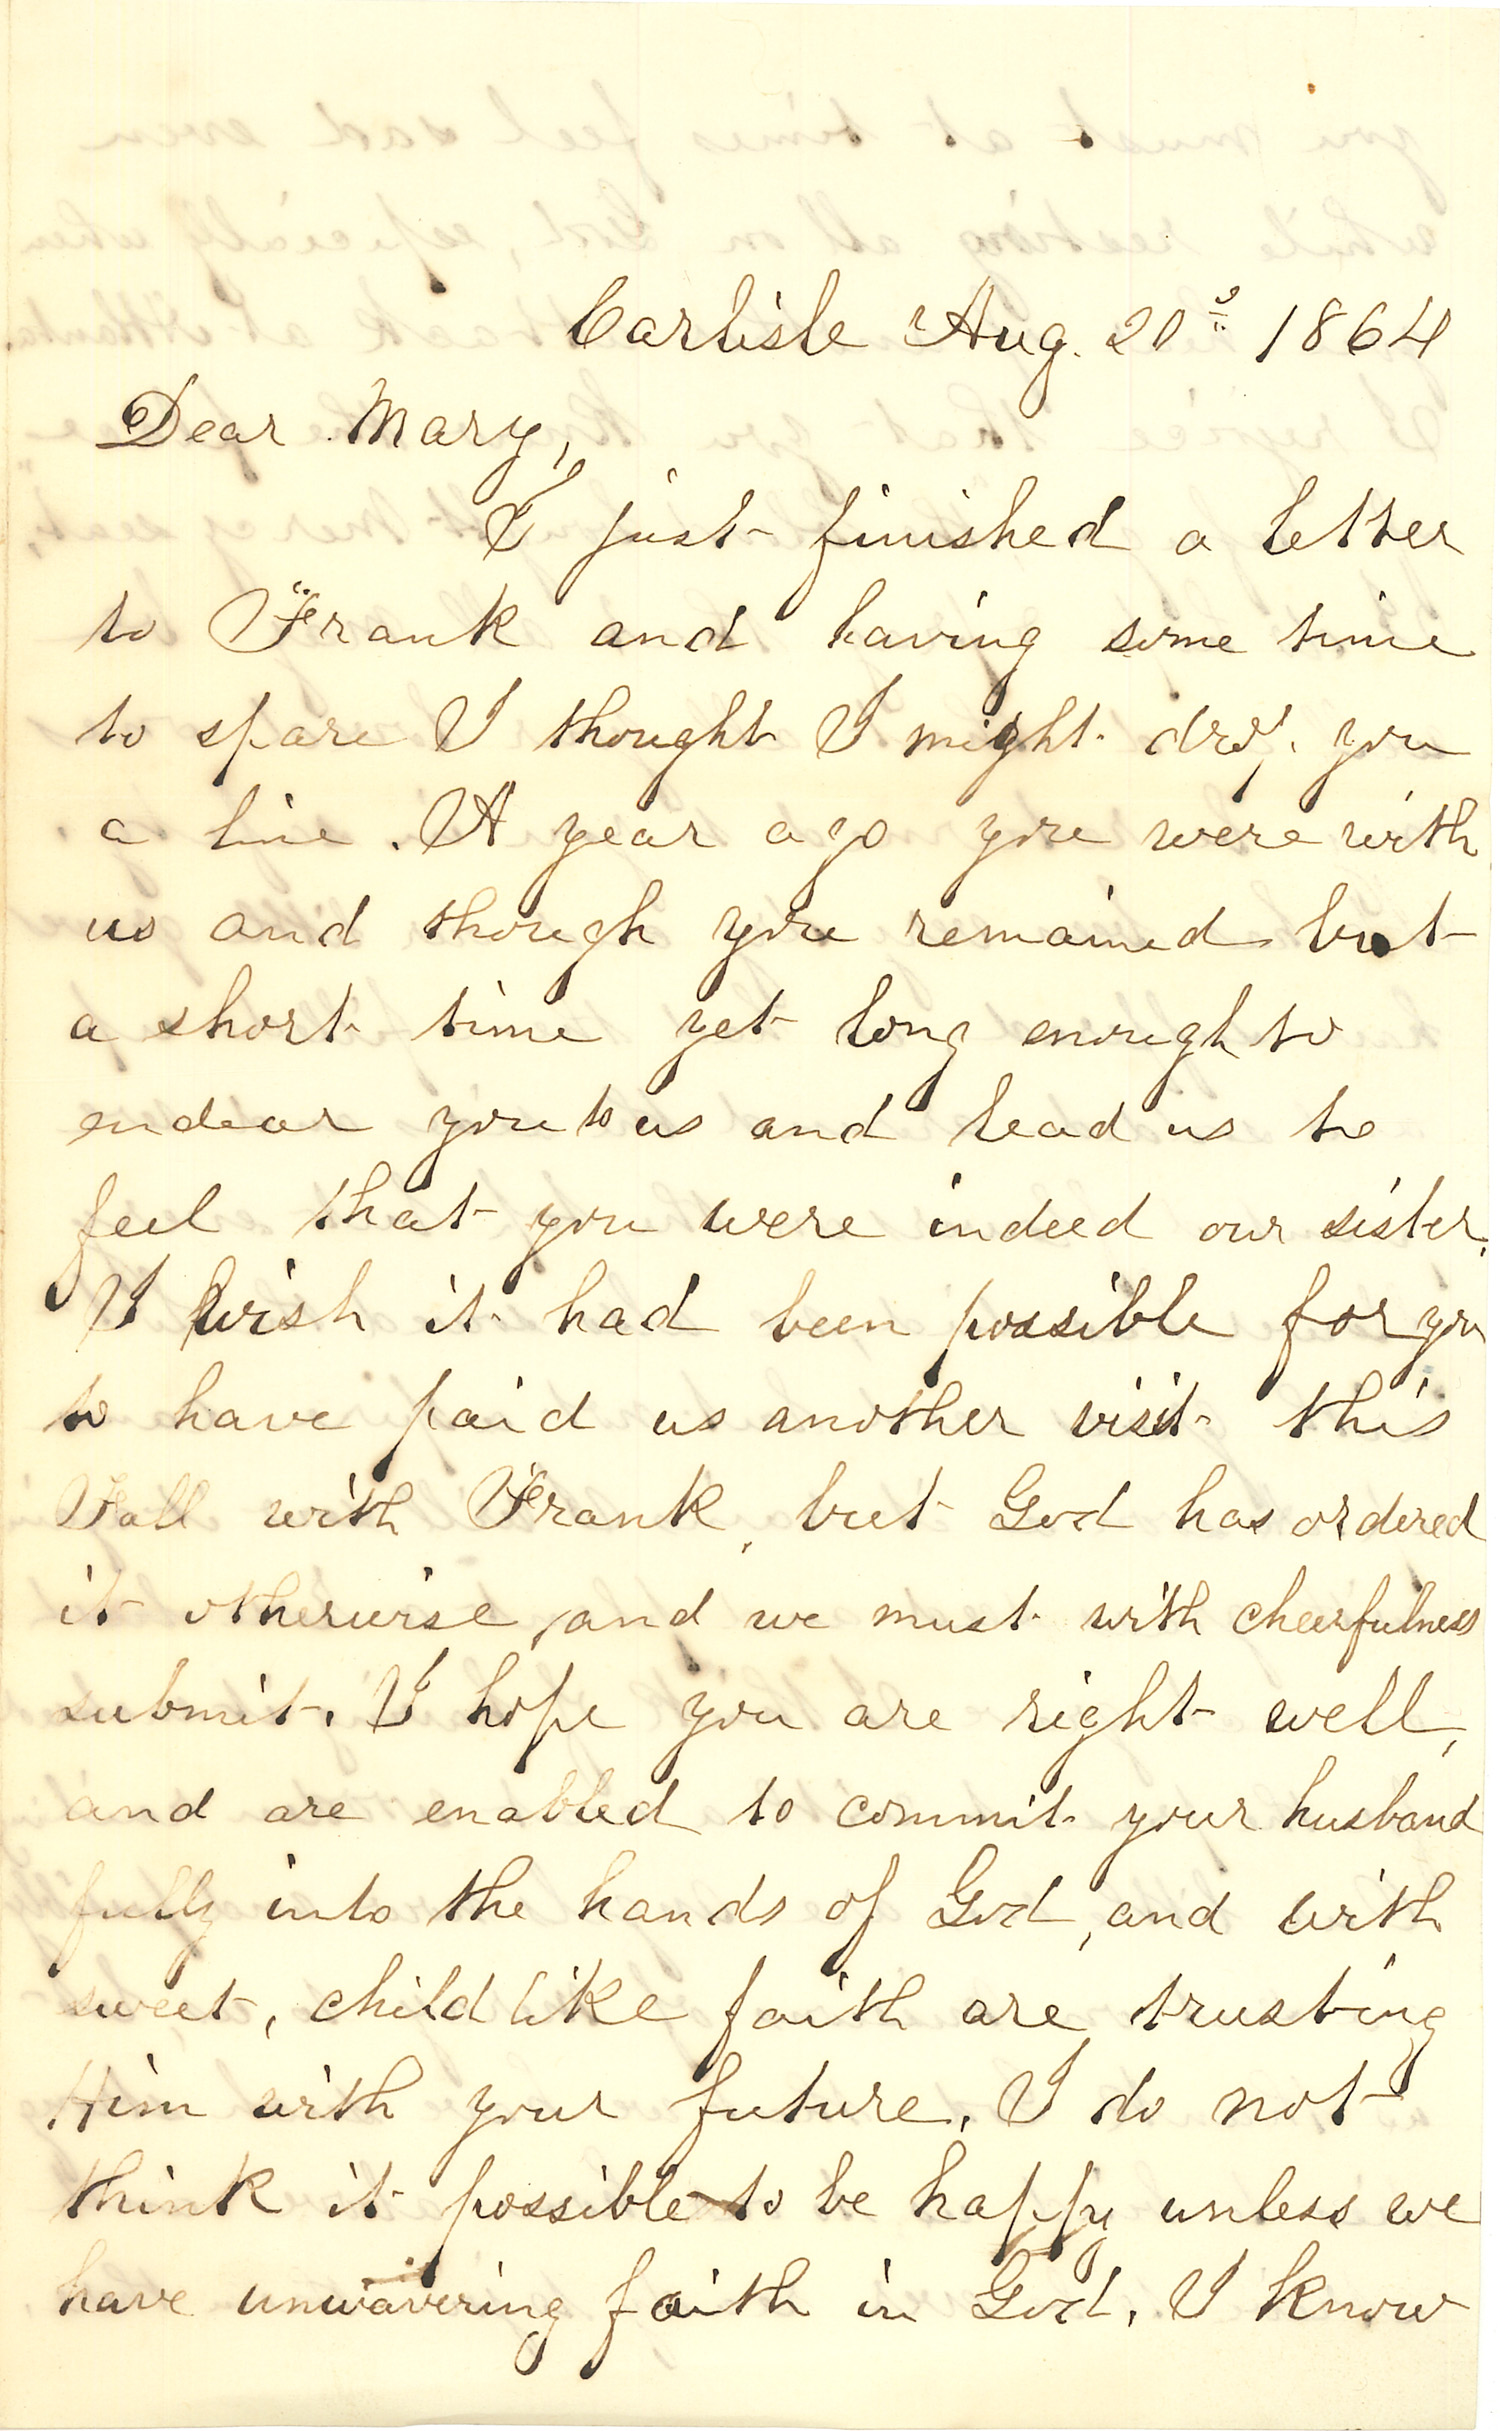 Joseph Culver Letter, August 20, 1864, Page 1